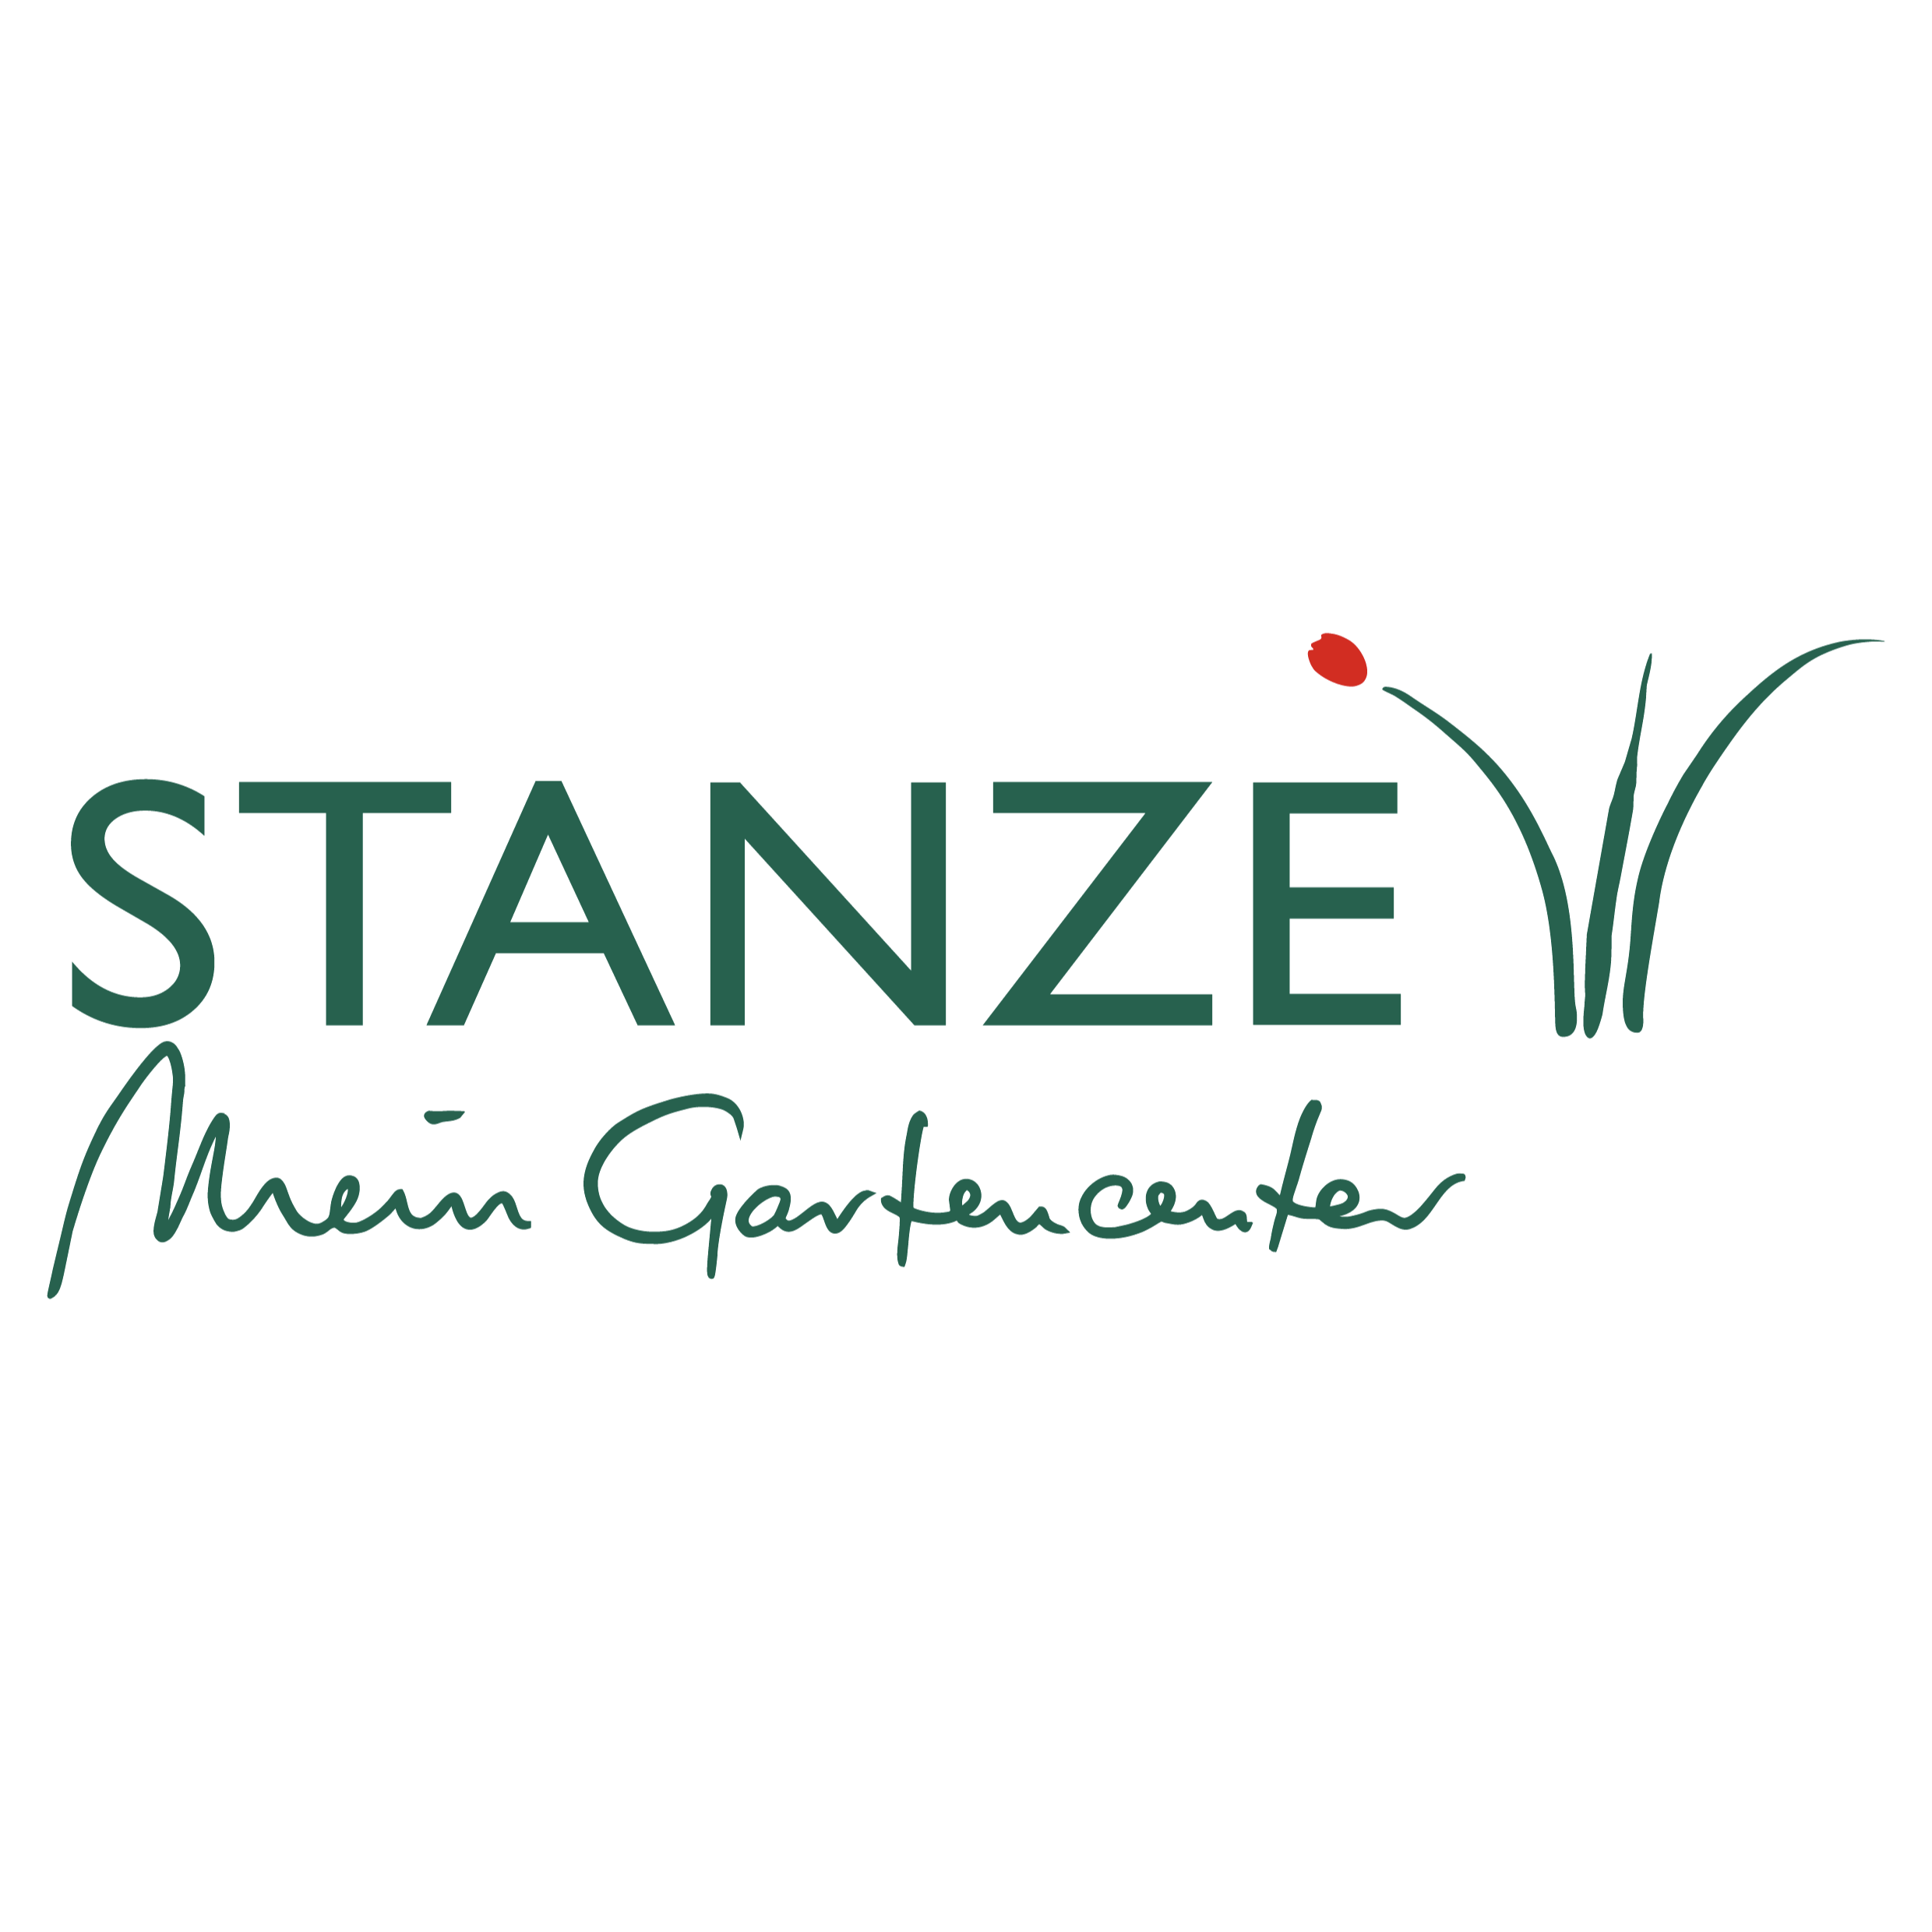 Bild zu Stanze Gartencenter in Hemmingen bei Hannover